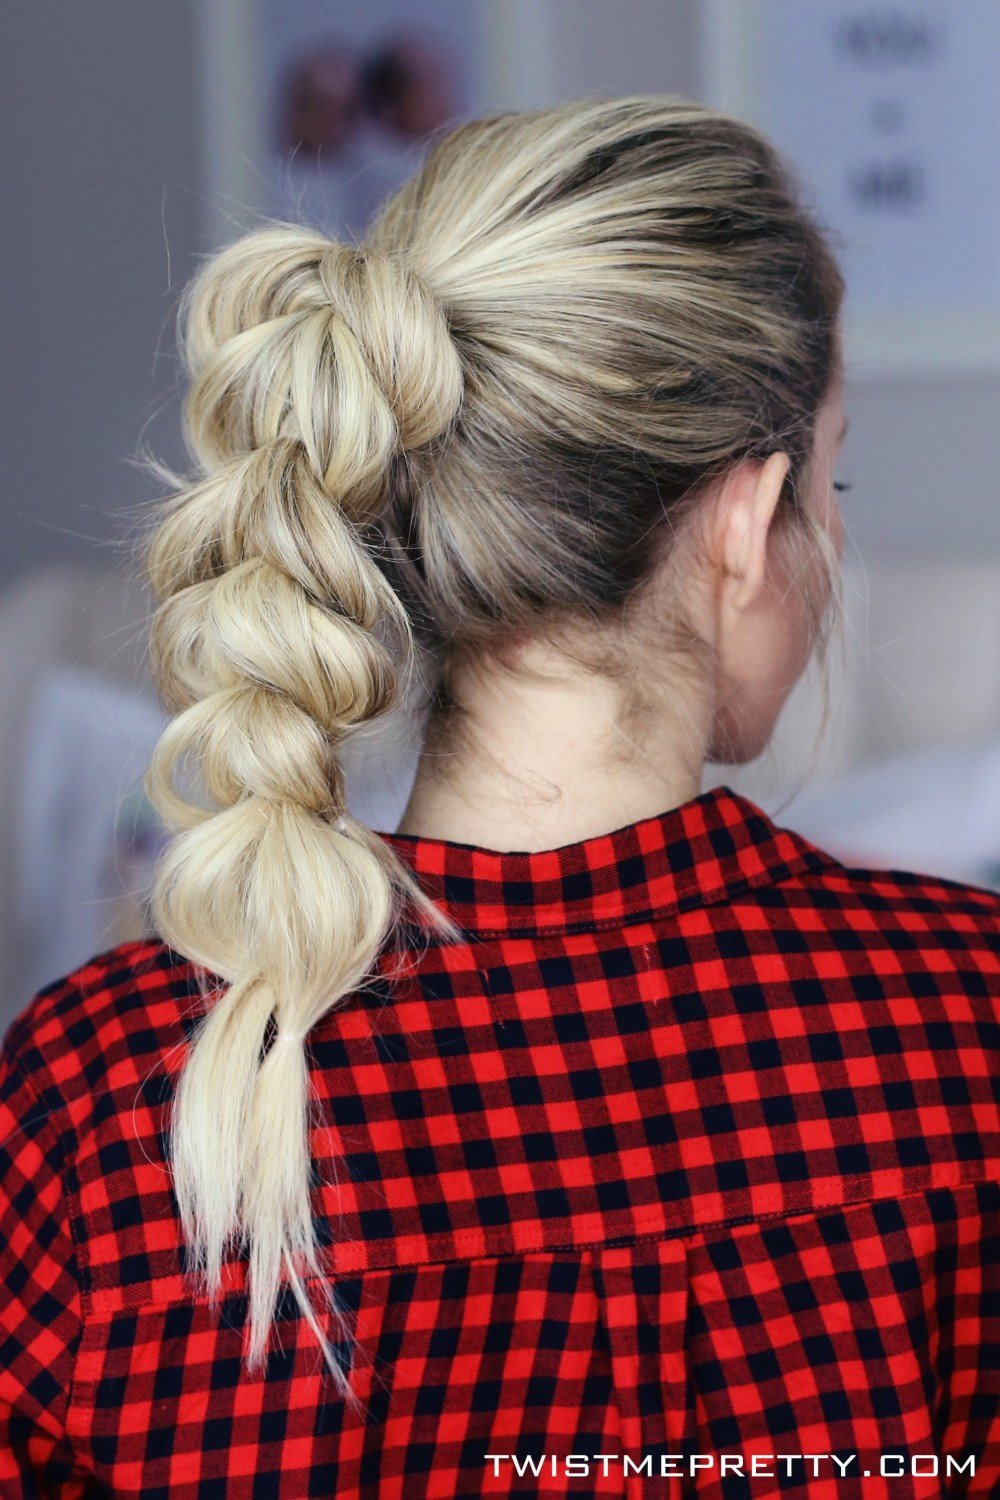 New 4 Hairstyles For D*Rty Hair Twist Me Pretty Ideas With Pictures